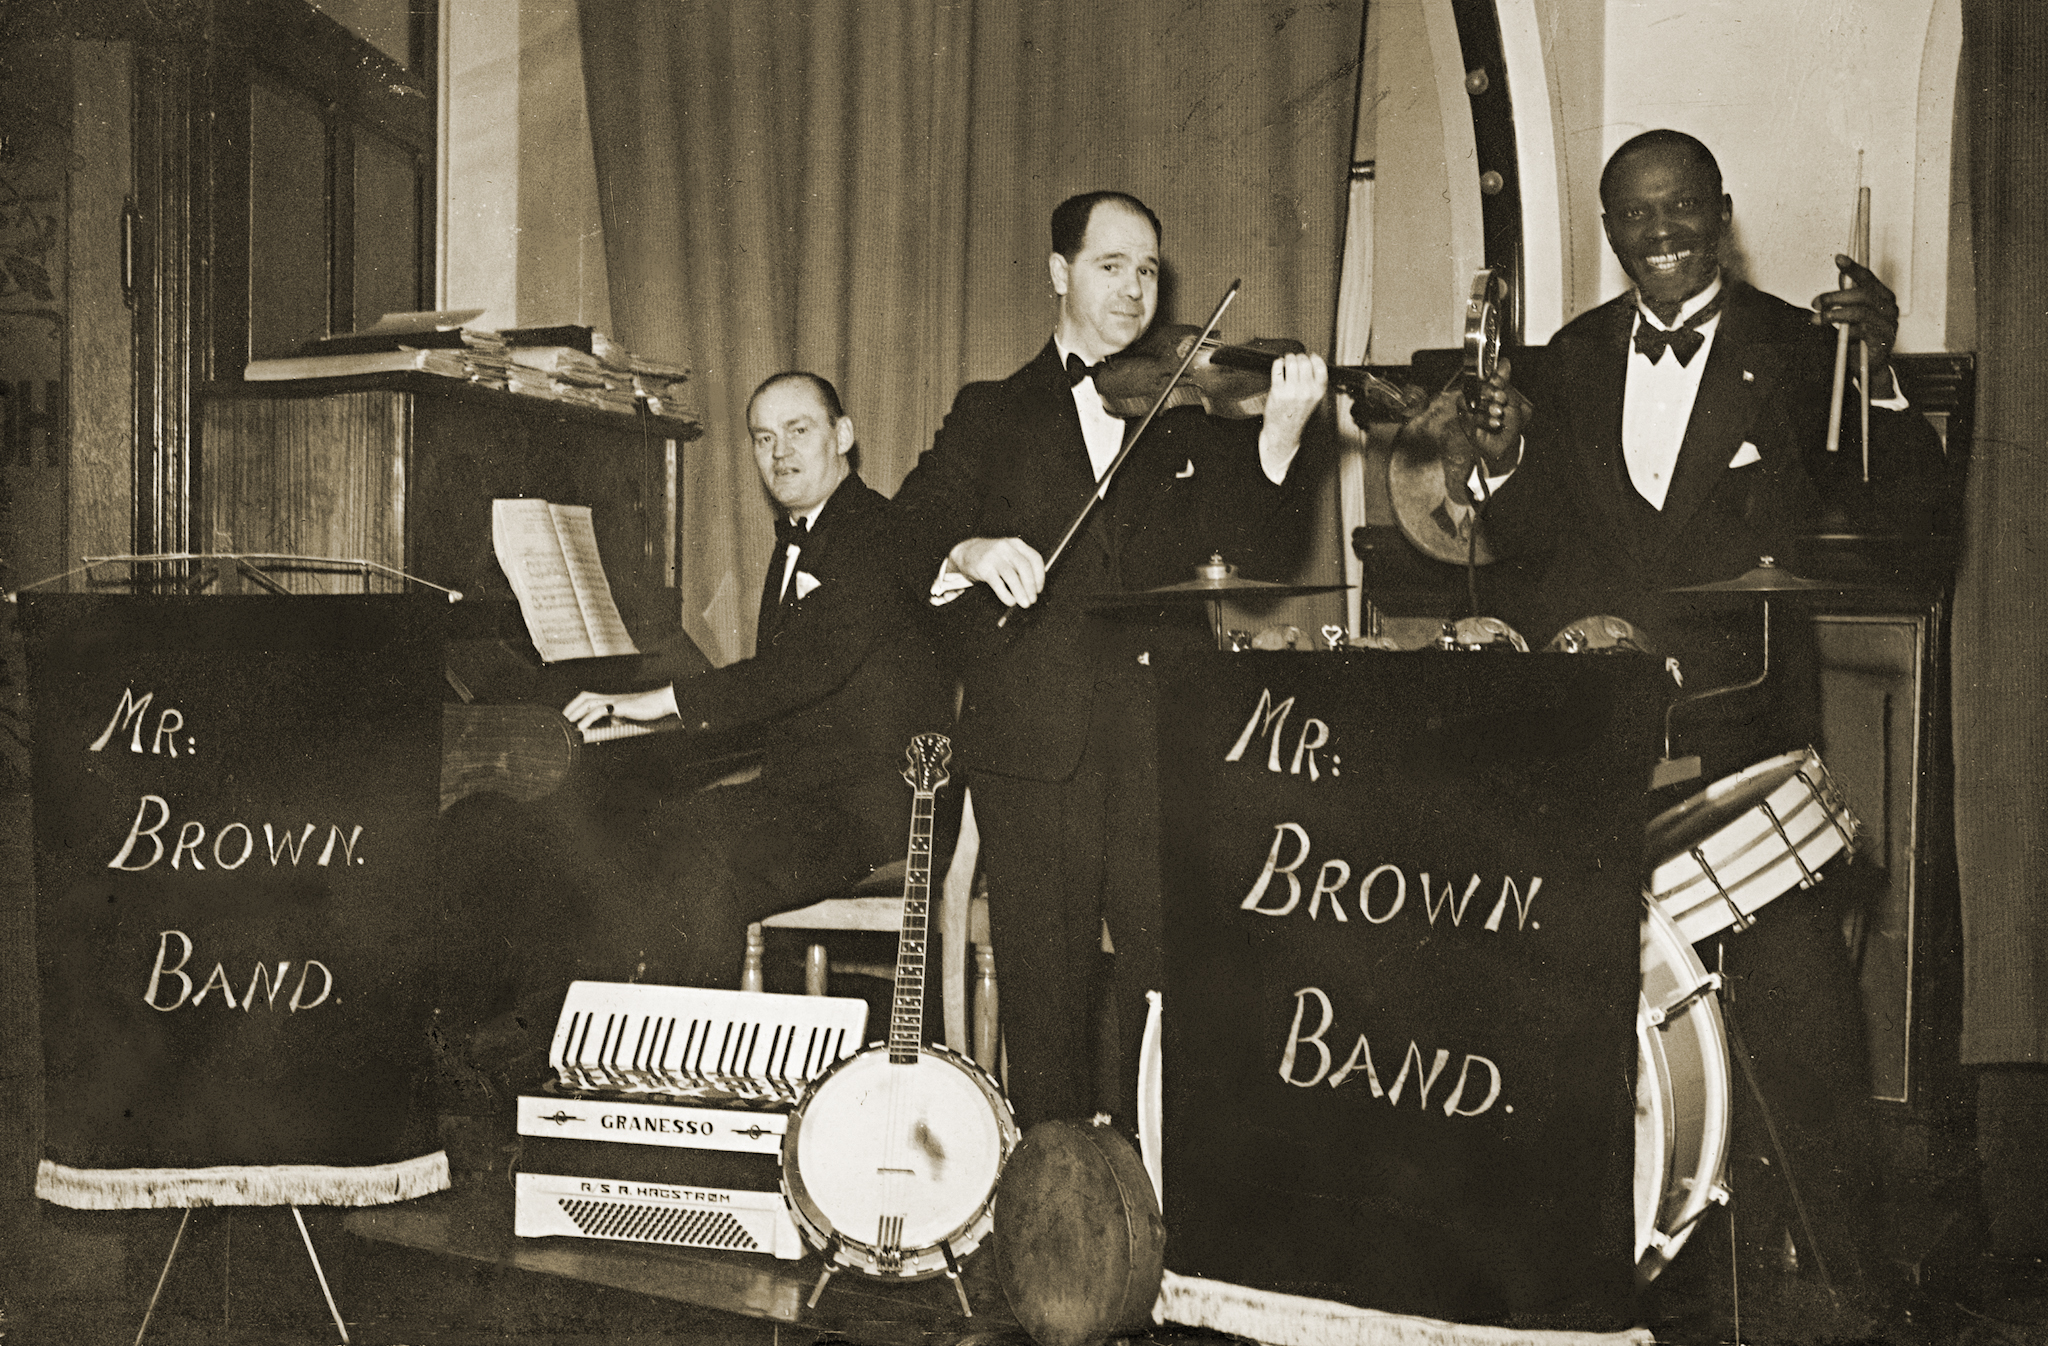 joseph_brown_mr_brown_band_privatfoto.jpg